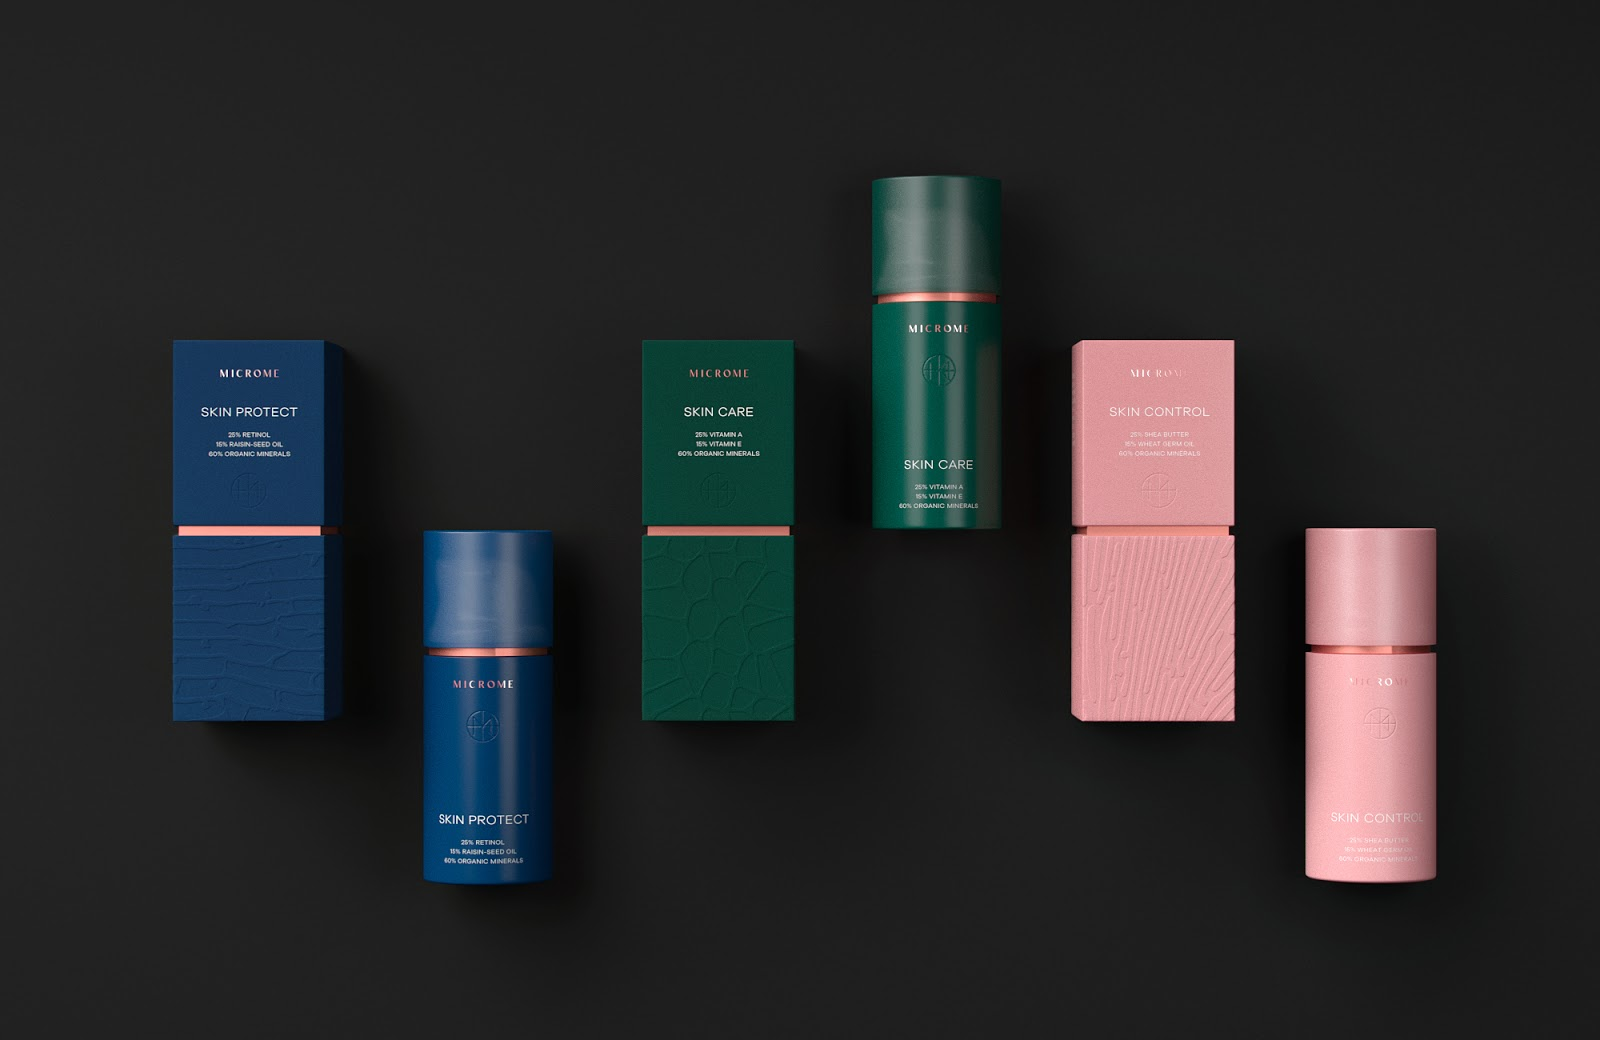 Basis Skin Care Products